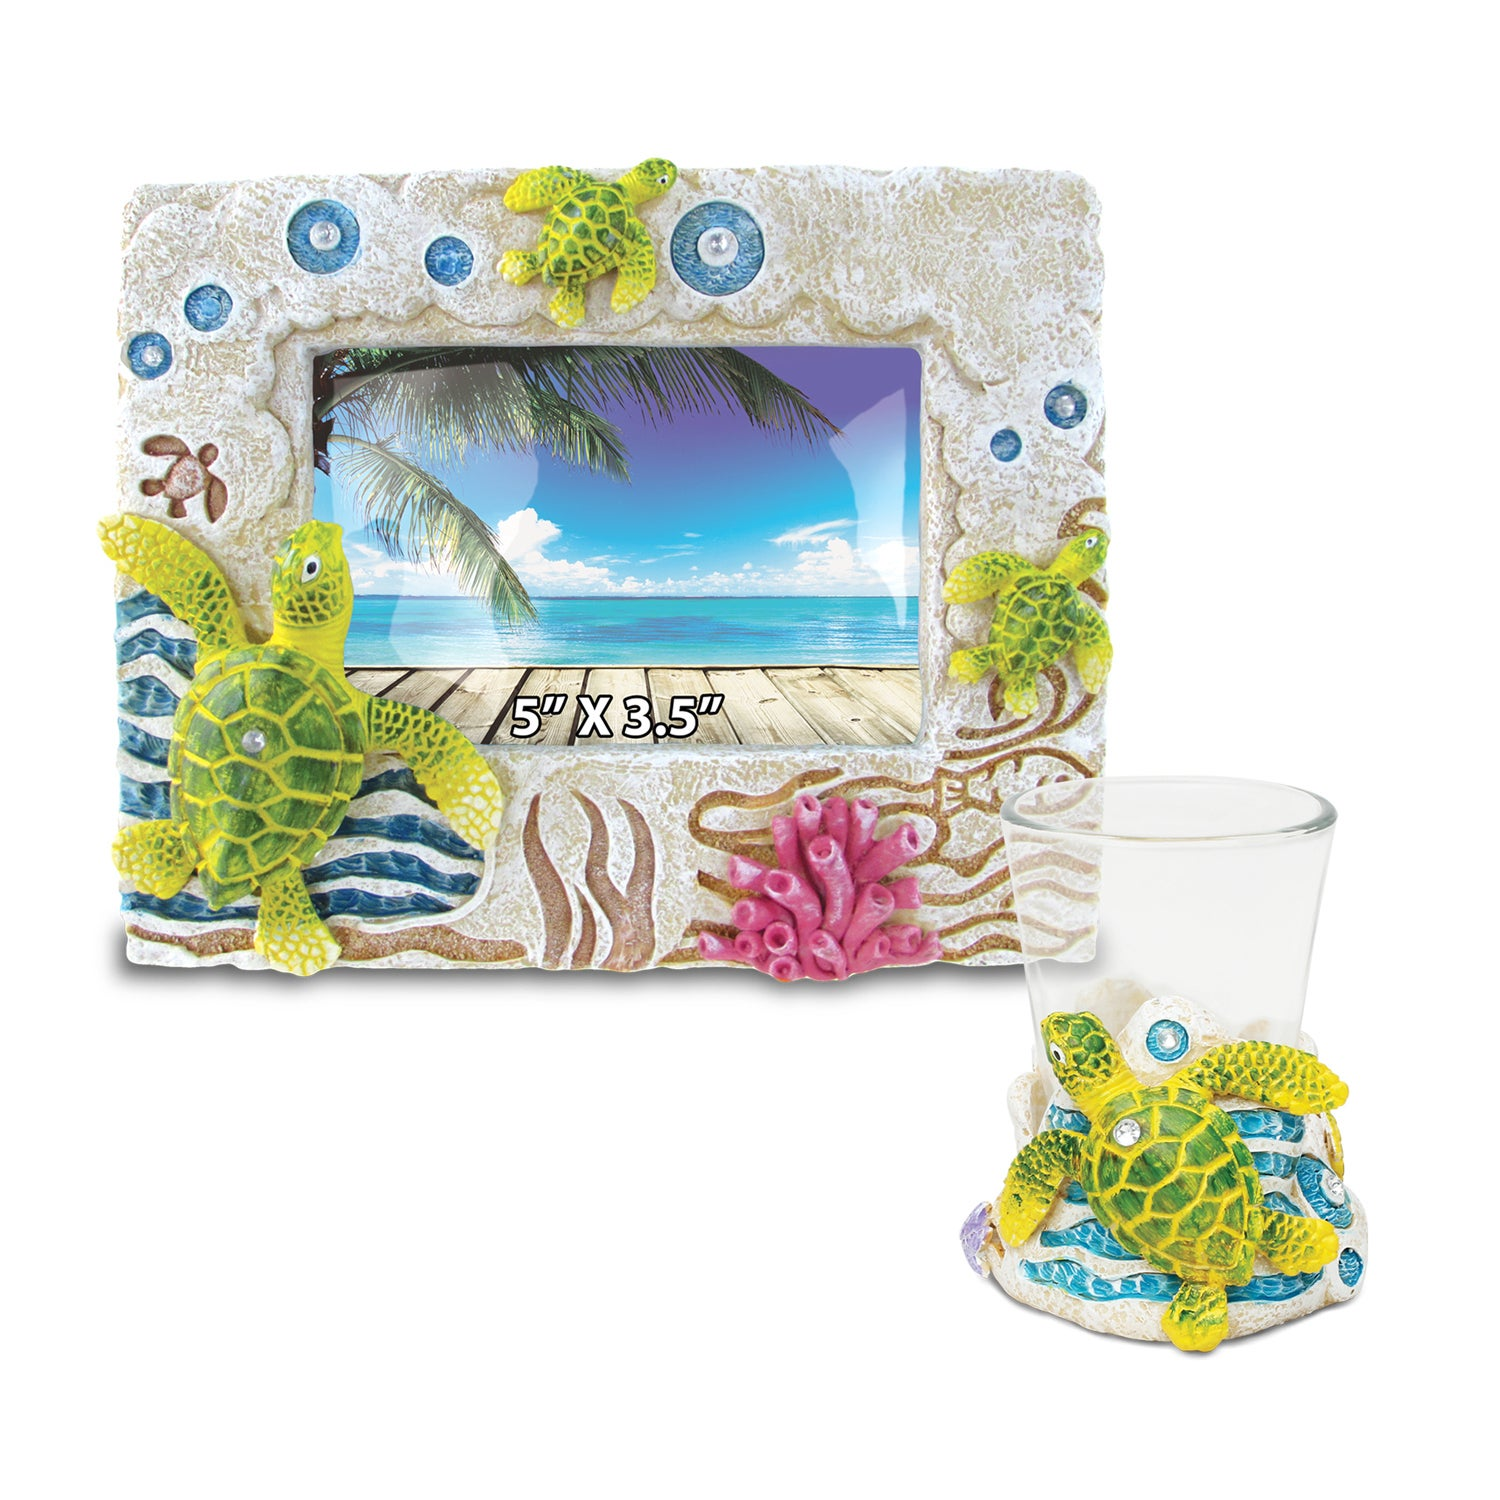 Puzzled Home Decor Value Pack Sea Turtle Resin Stone coll...